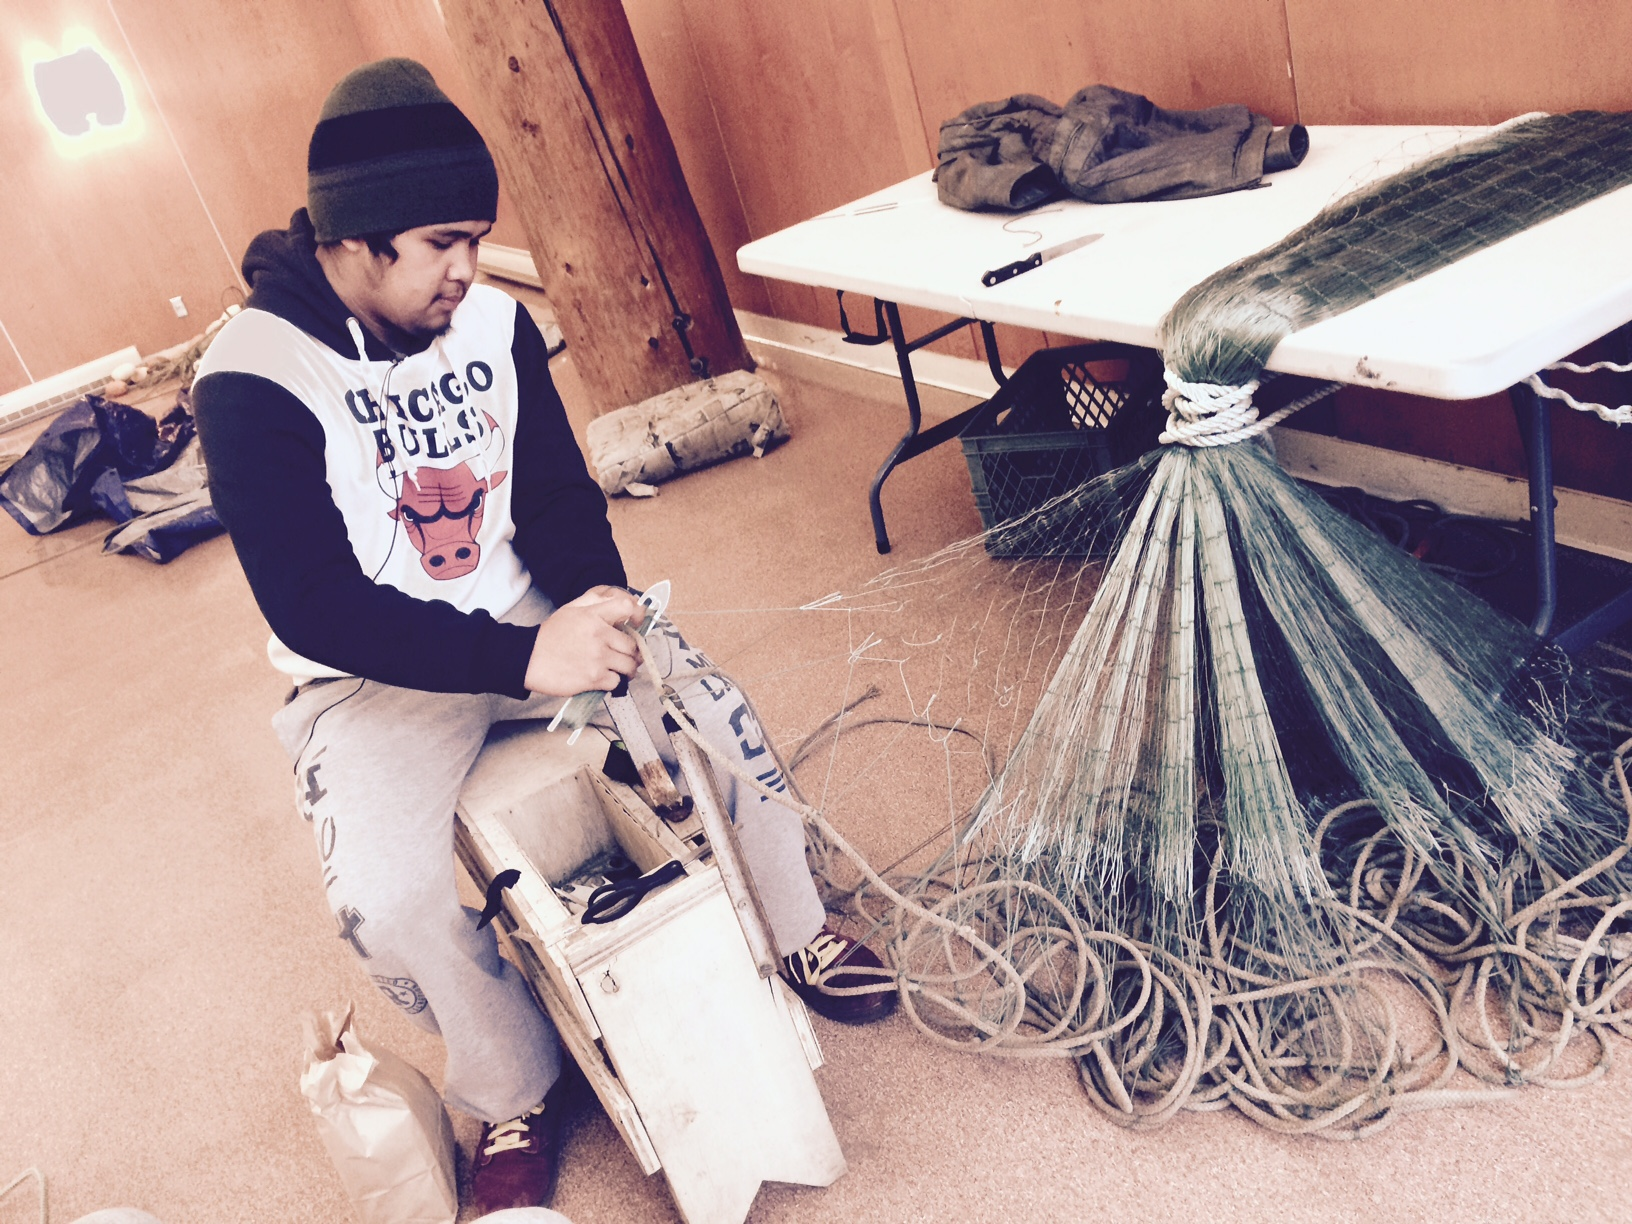 First Nations Fisheries Apprenticeship Program: A Whole Lot More than Catching Fish